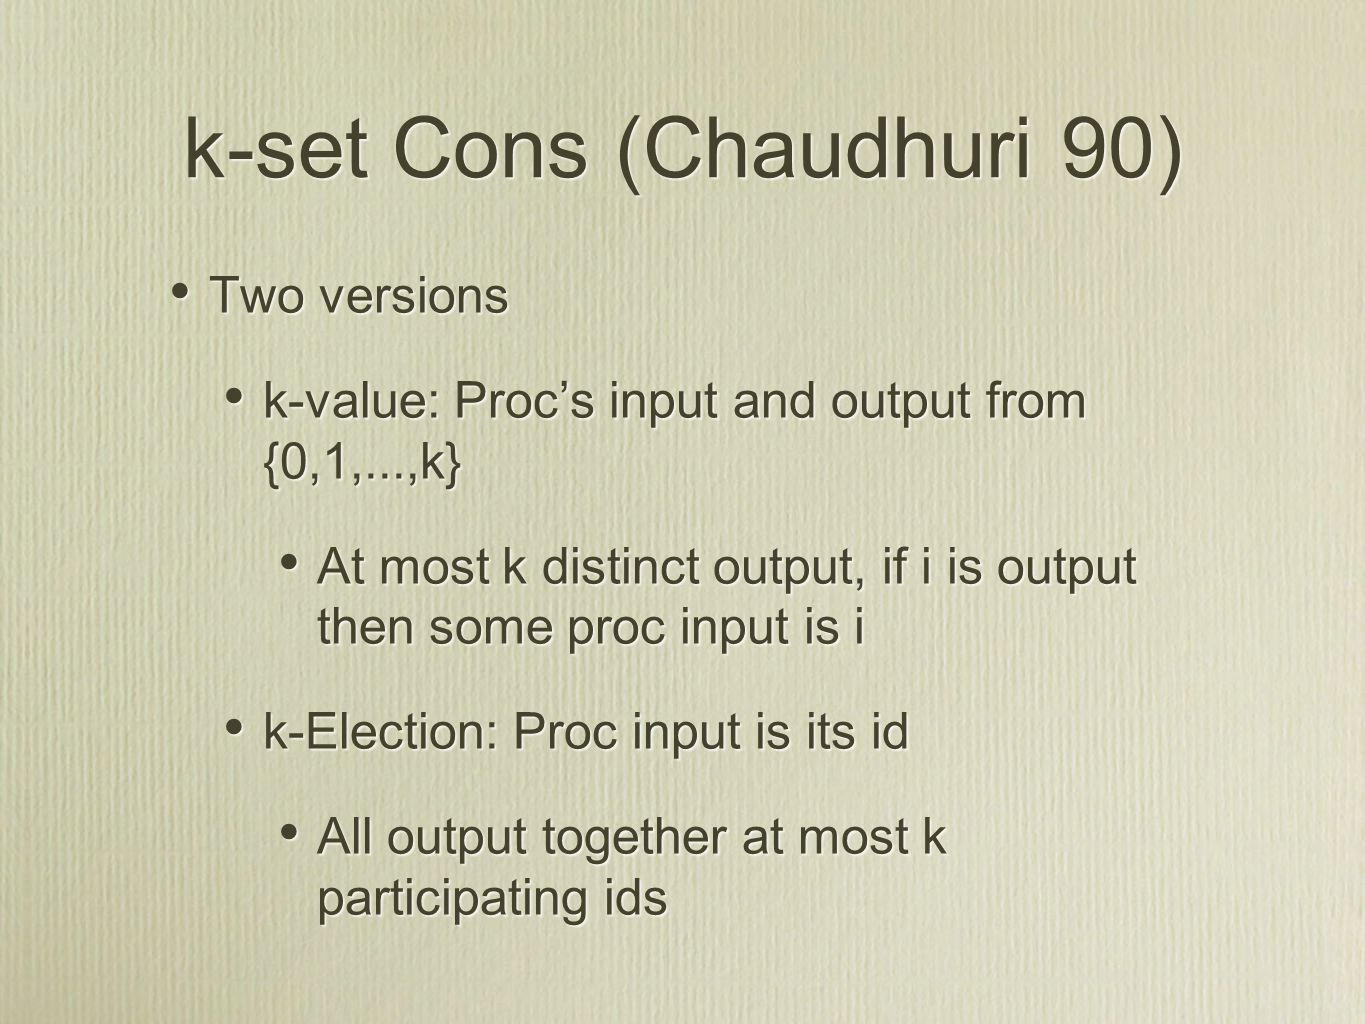 k-set Cons (Chaudhuri 90) Two versions k-value: Proc's input and output from {0,1,...,k} At most k distinct output, if i is output then some proc input is i k-Election: Proc input is its id All output together at most k participating ids Two versions k-value: Proc's input and output from {0,1,...,k} At most k distinct output, if i is output then some proc input is i k-Election: Proc input is its id All output together at most k participating ids